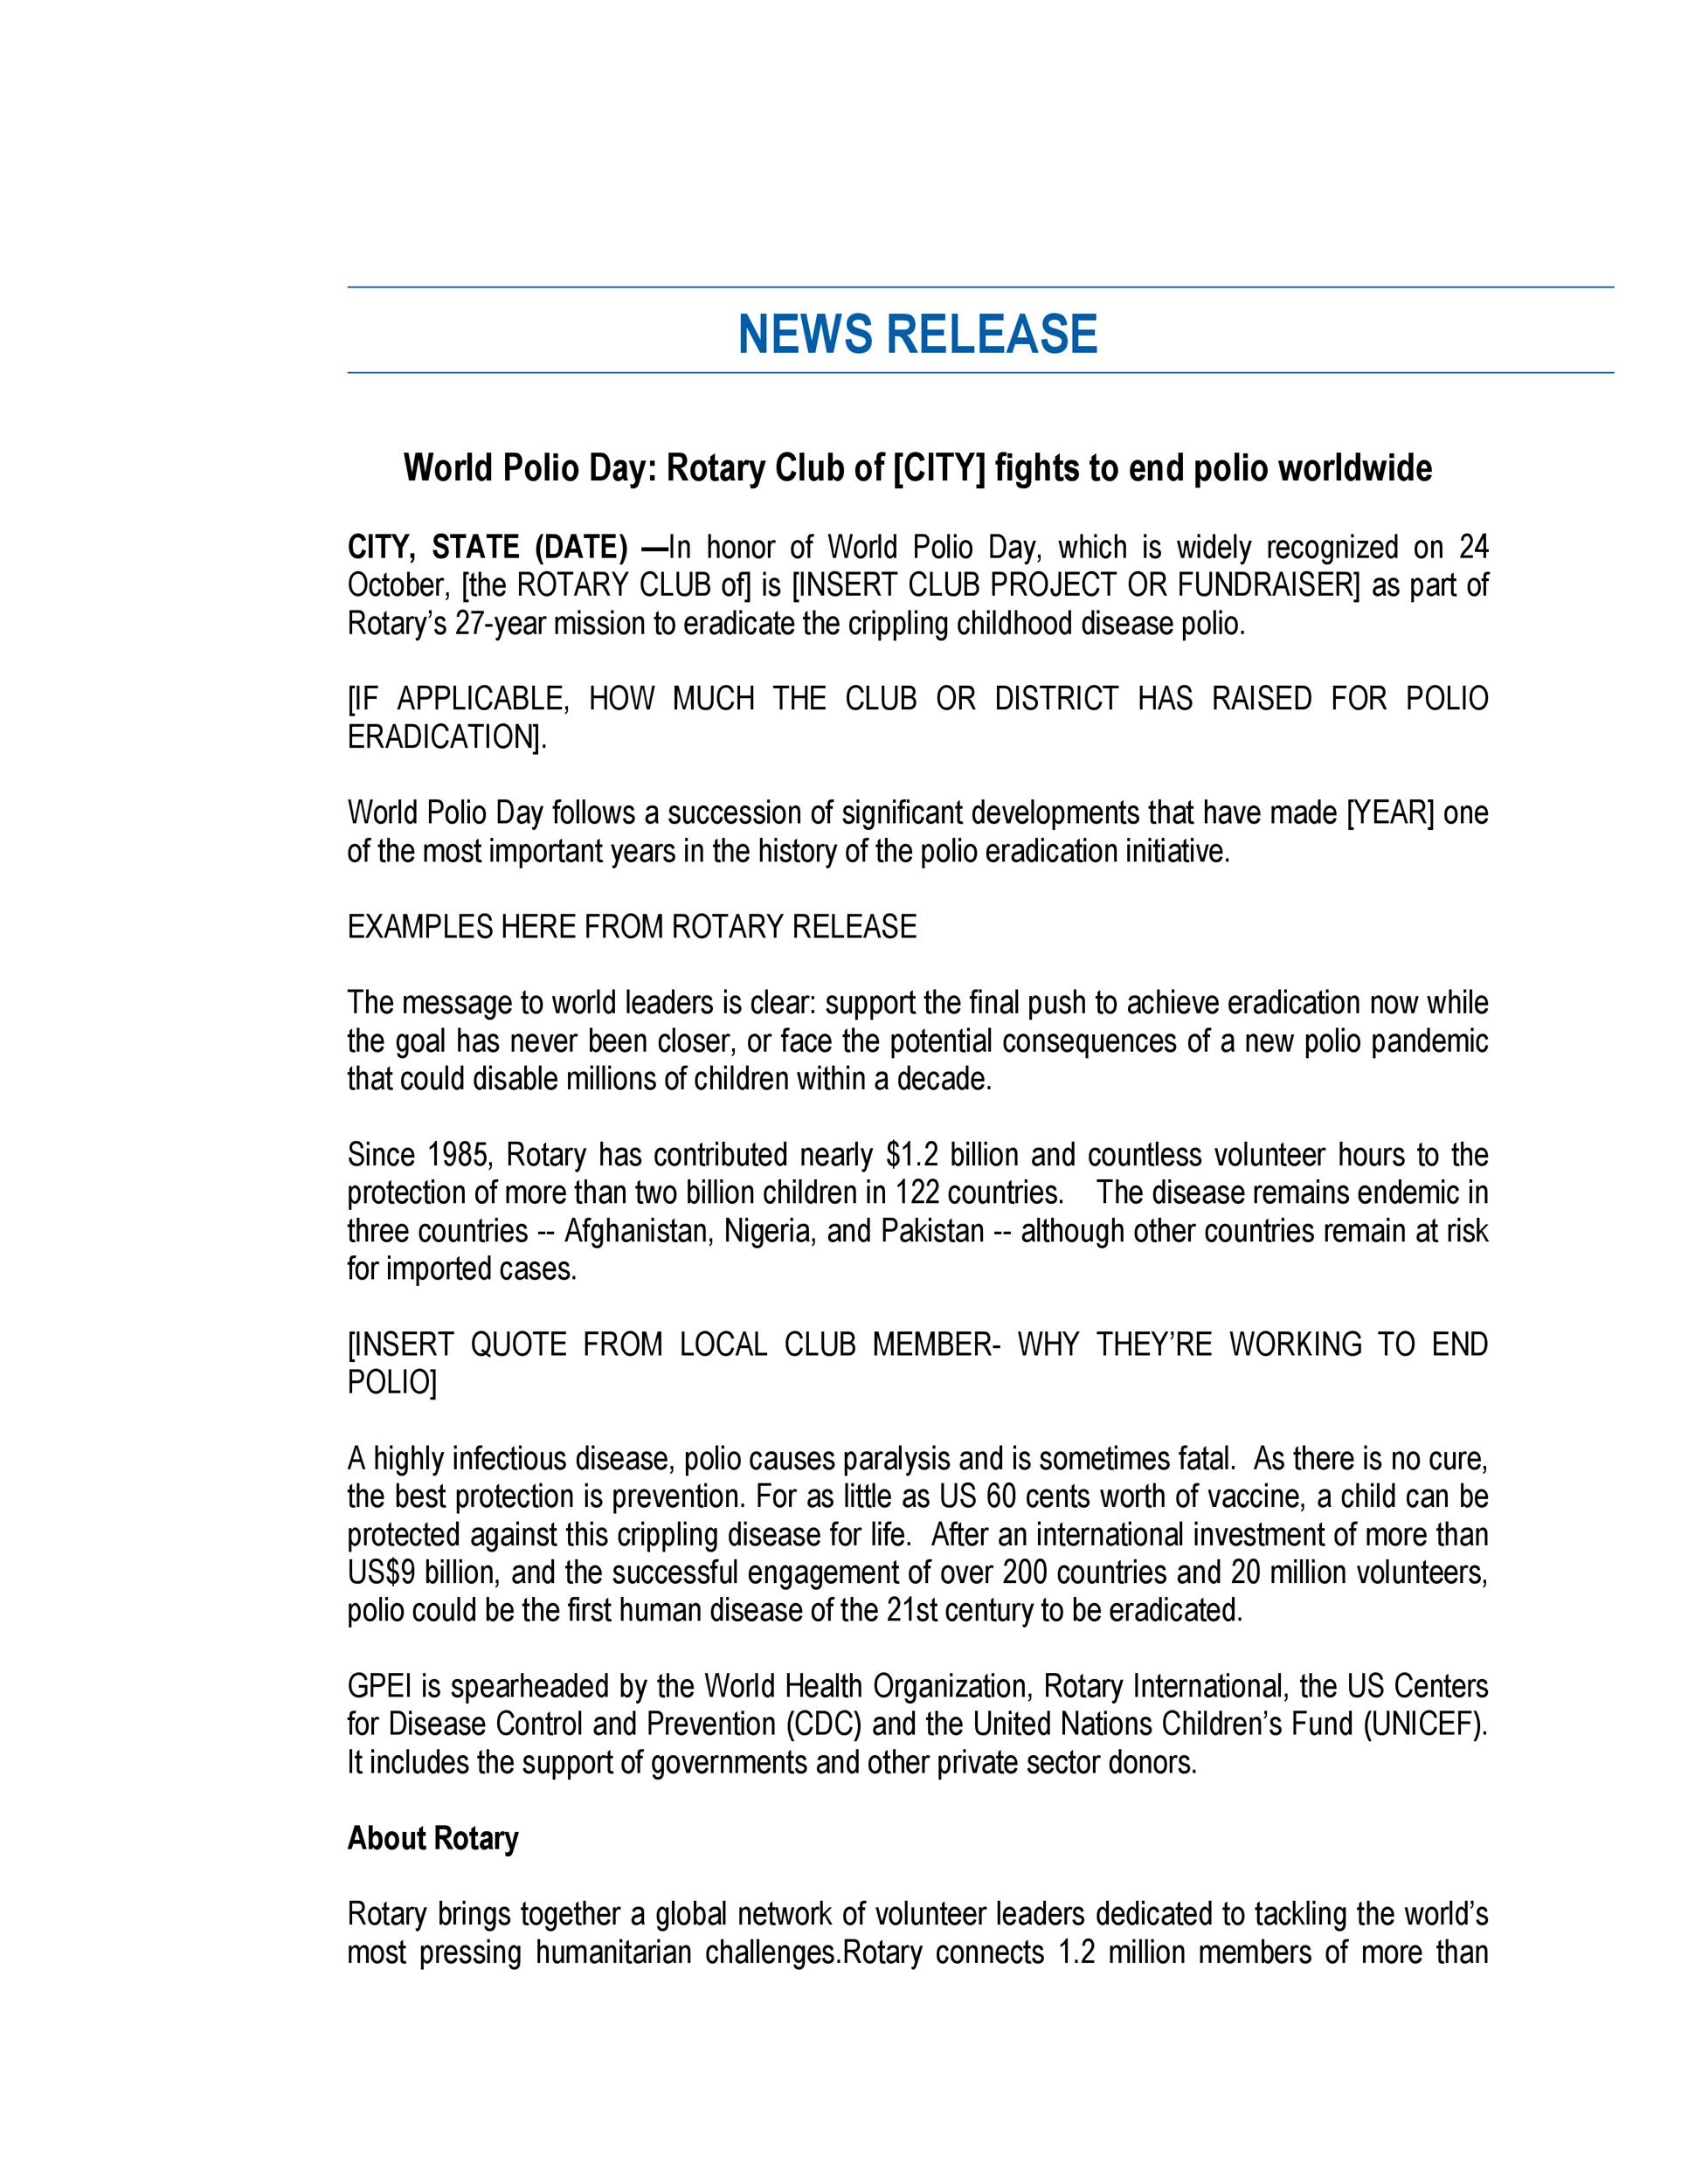 Free Press release template 06